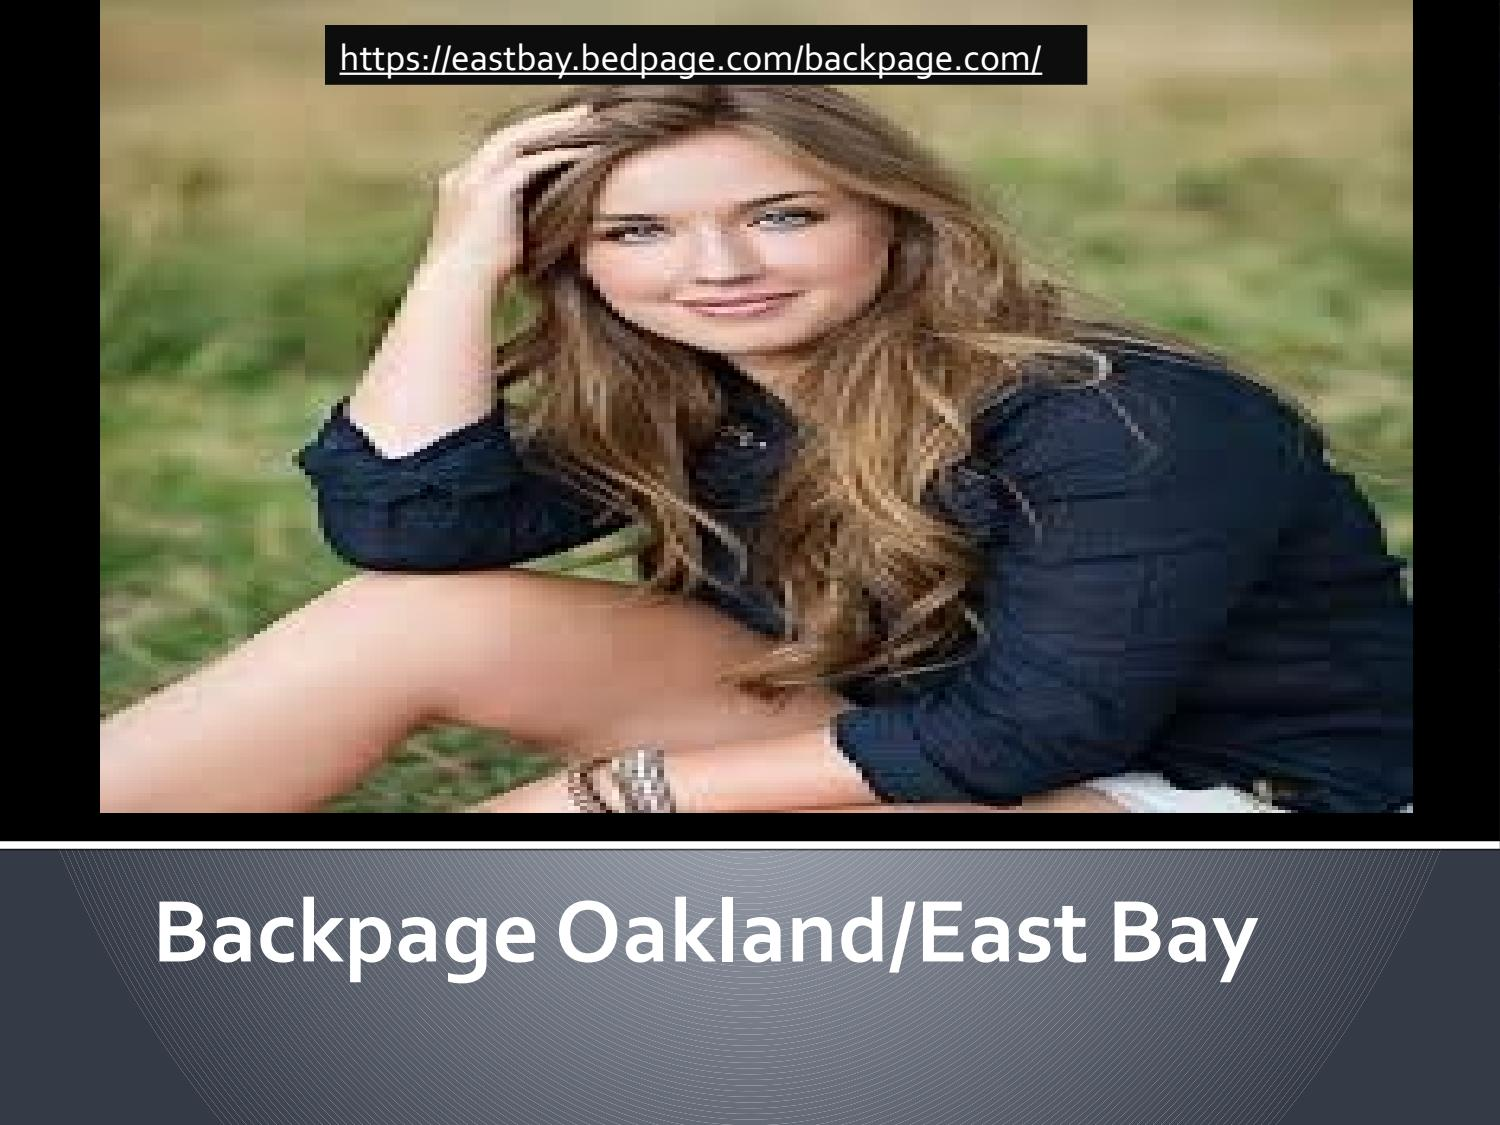 Backpage Oakland/East Bay is site similar to backpage